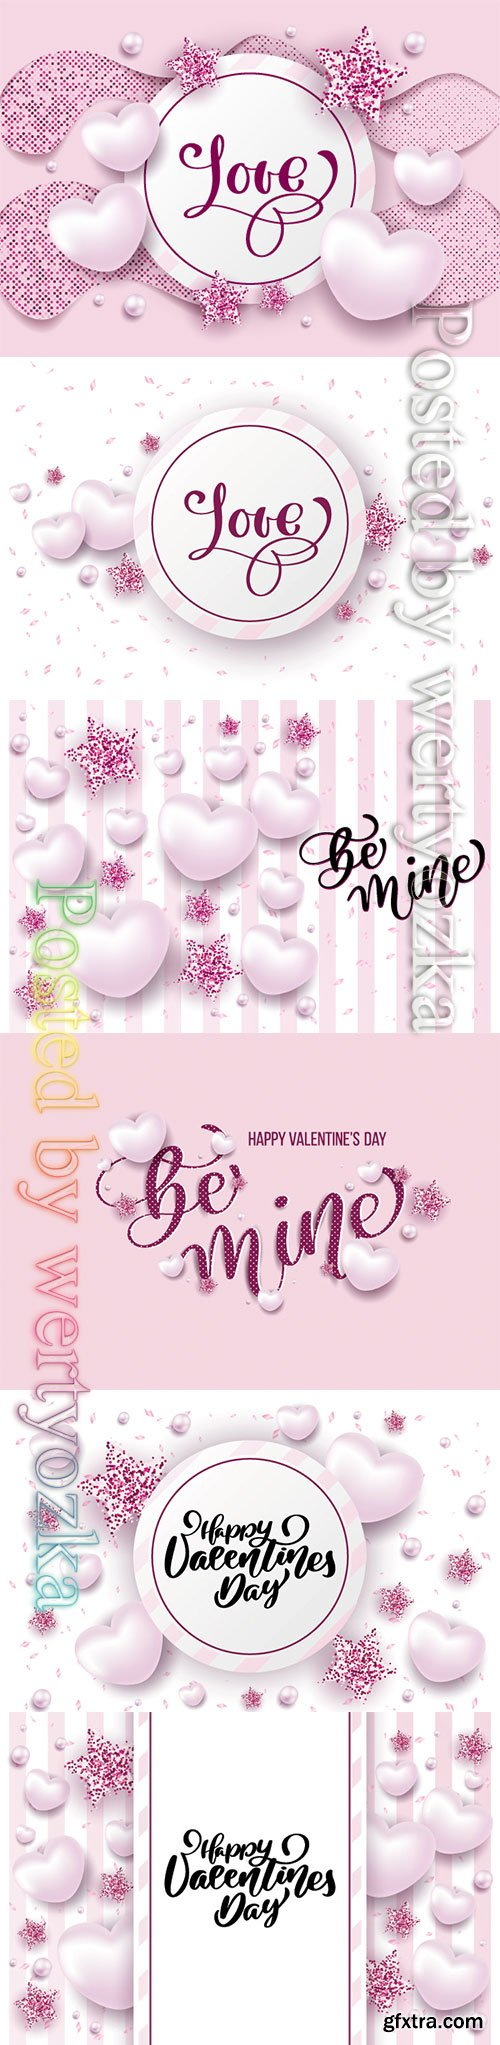 Happy valentine day festive sparkle layout template design